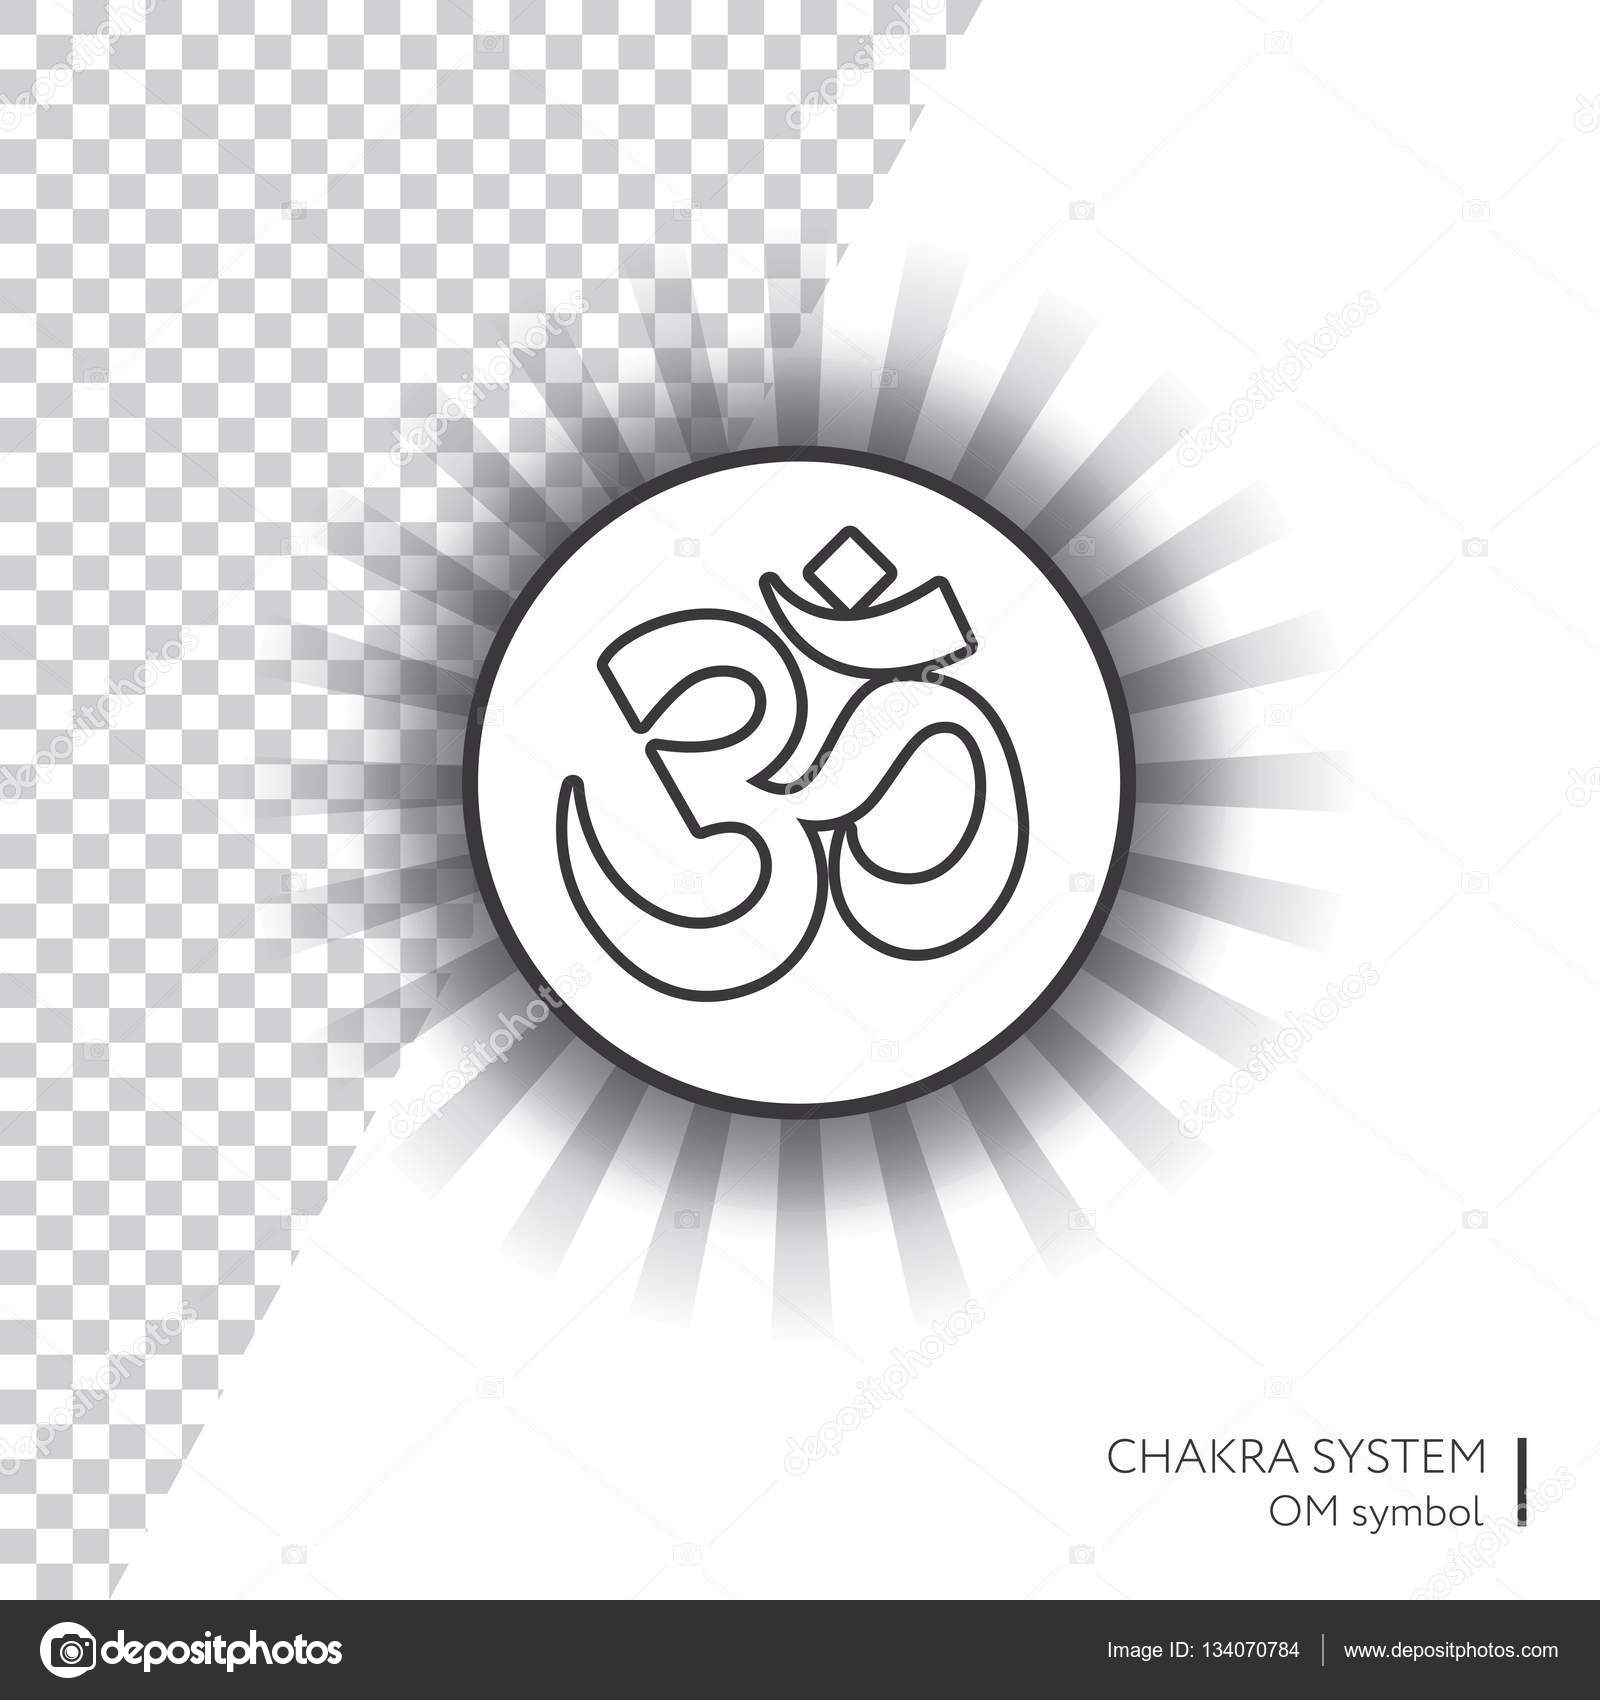 Symbol om vector isolated minimalistic icon with transparent aura symbol om vector isolated minimalistic icon with transparent aura for yoga studio banner biocorpaavc